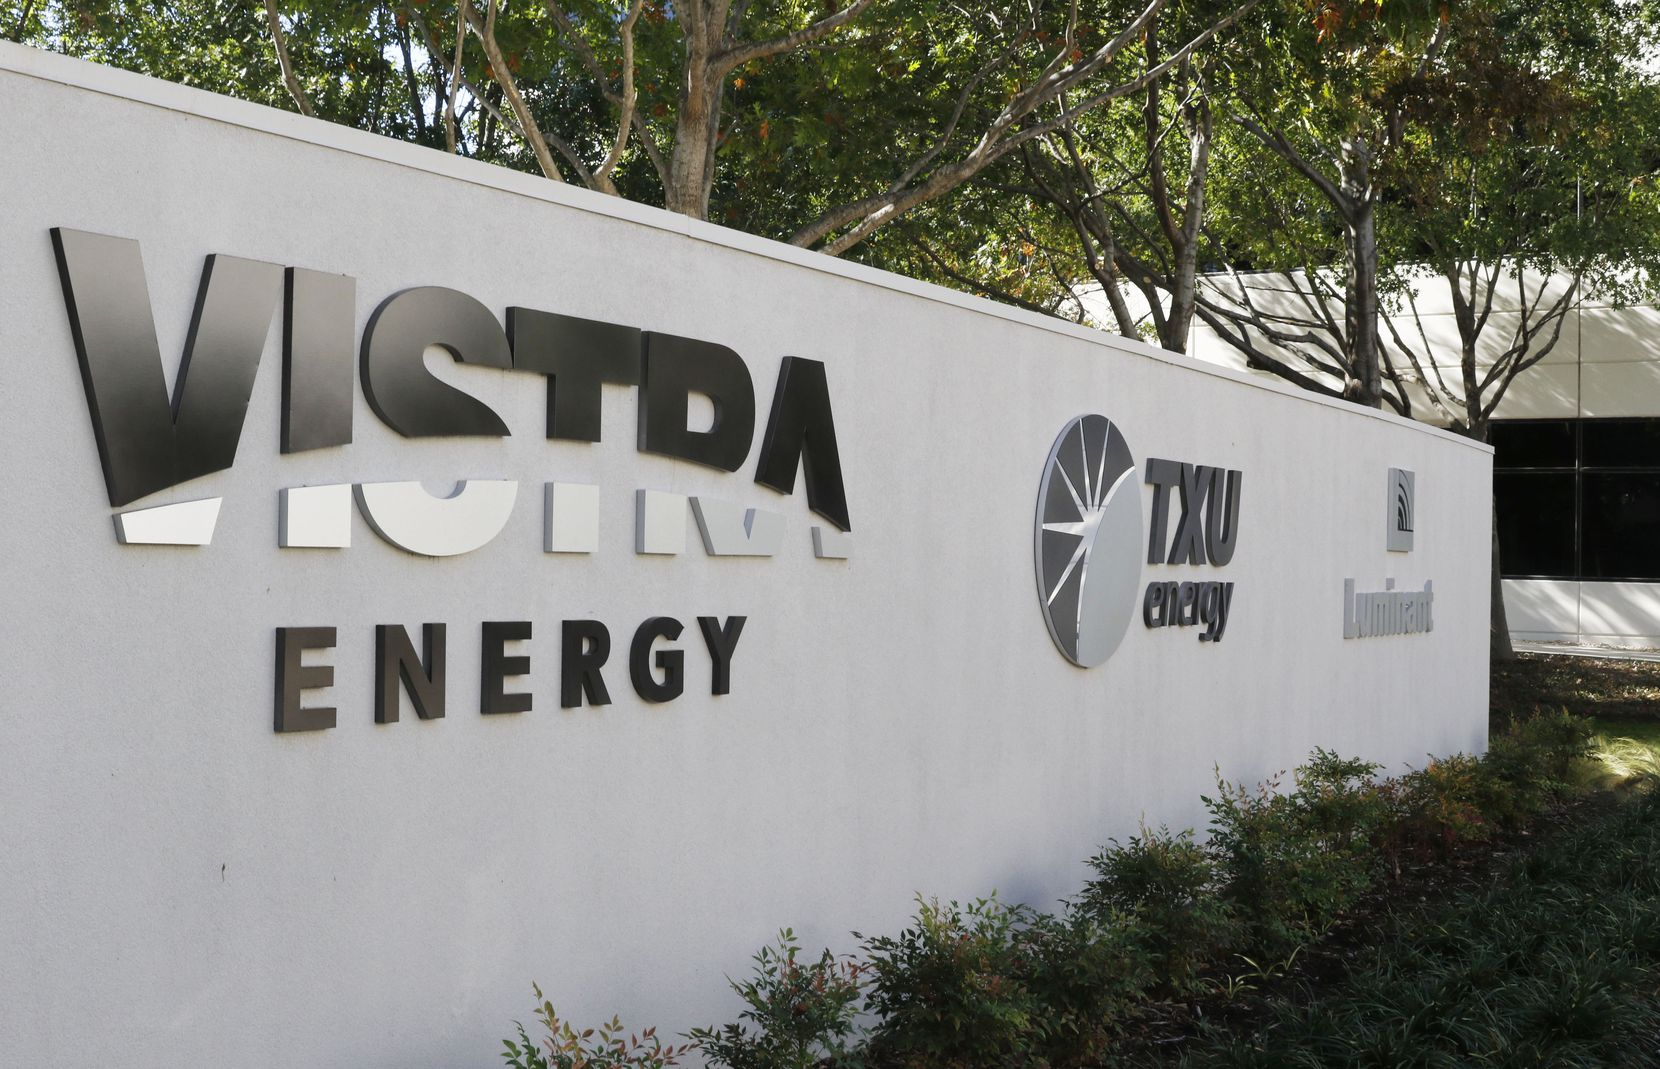 The headquarters of Vistra Energy on Monday, October 30, 2017 in Irving, Texas.  Irving-based Vistra Energy, the parent company for TXU Energy and Luminant, said Monday, Oct. 30, 2017 it will merge with Houston-based Dynegy Inc.